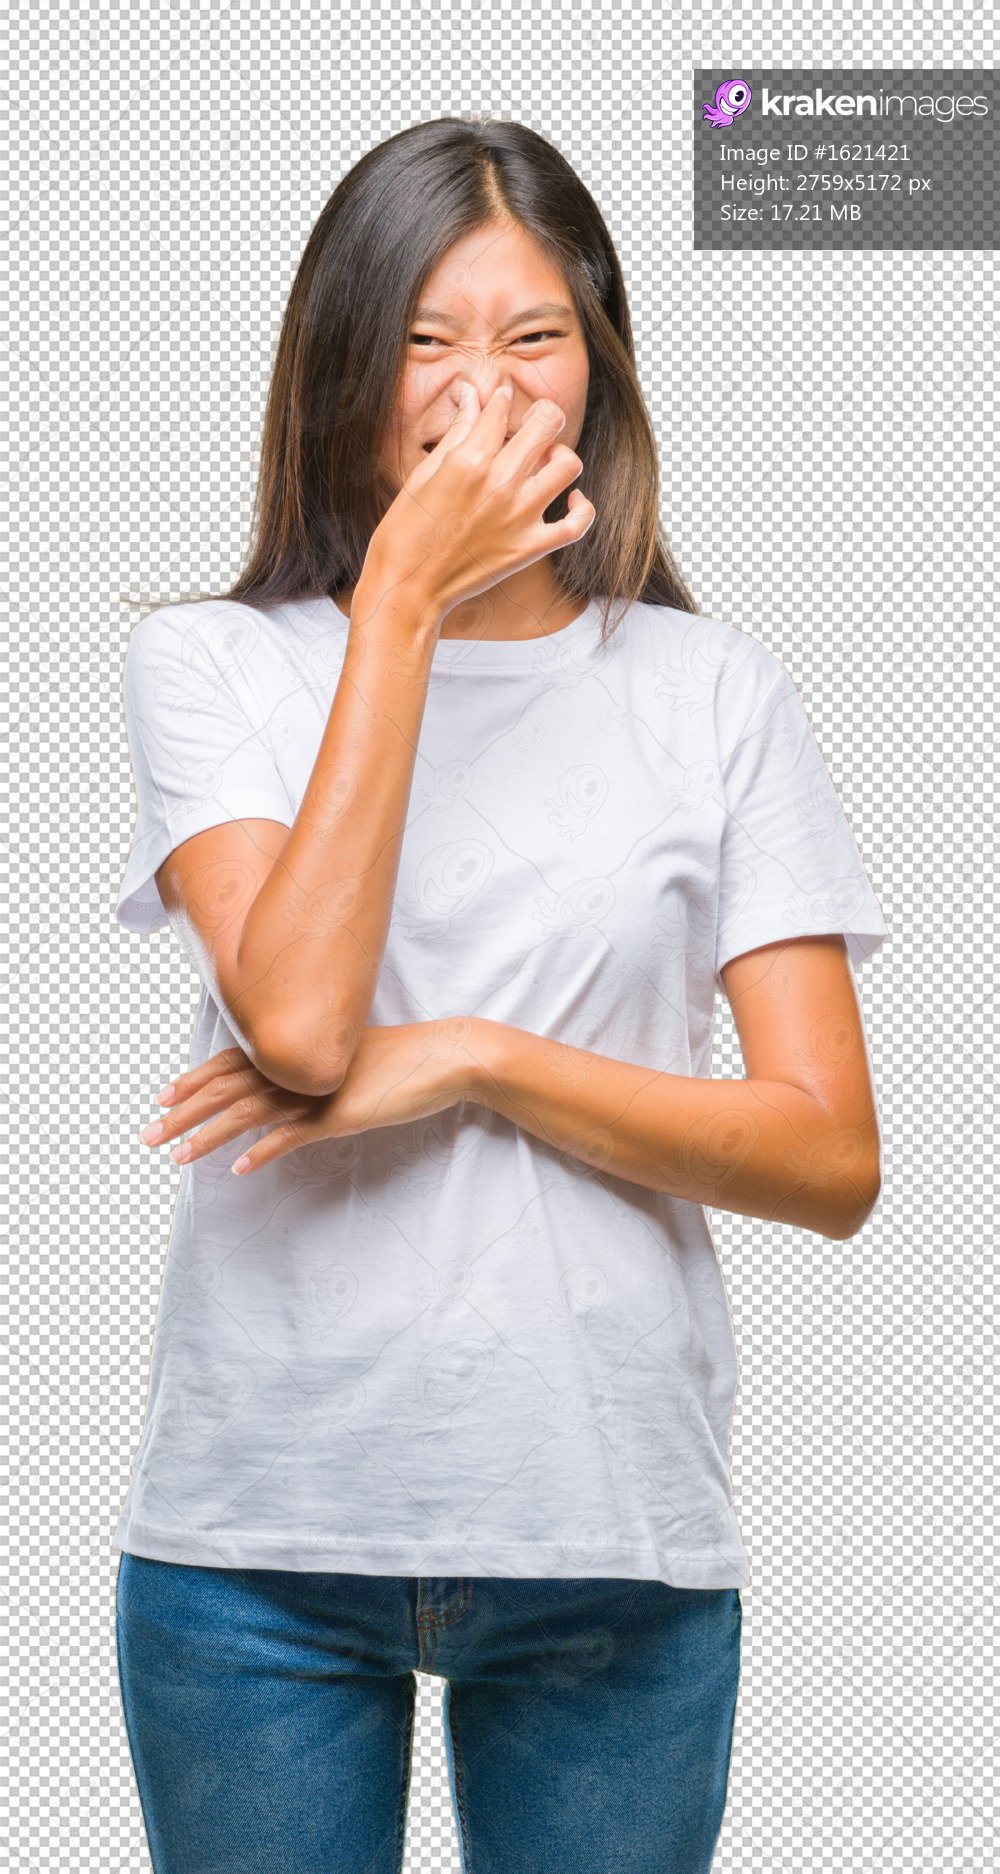 Young asian woman over isolated background smelling something stinky and disgusting, intolerable smell, holding breath with fingers on nose. Bad smells concept.